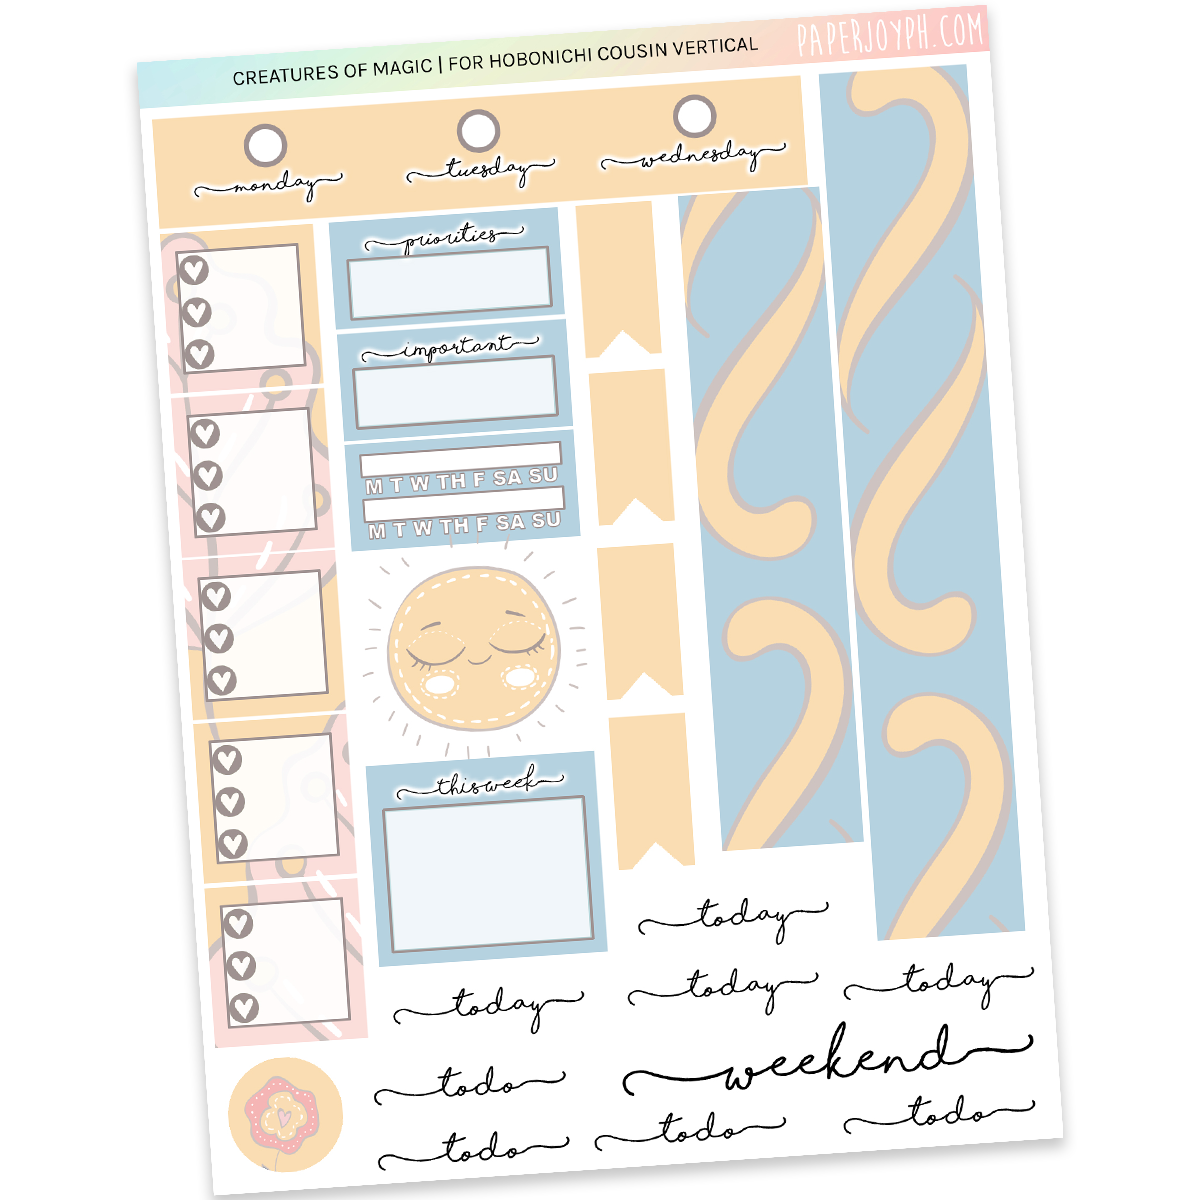 HOBONICHI COUSIN | VERTICAL STICKER KIT | Creatures of Magic